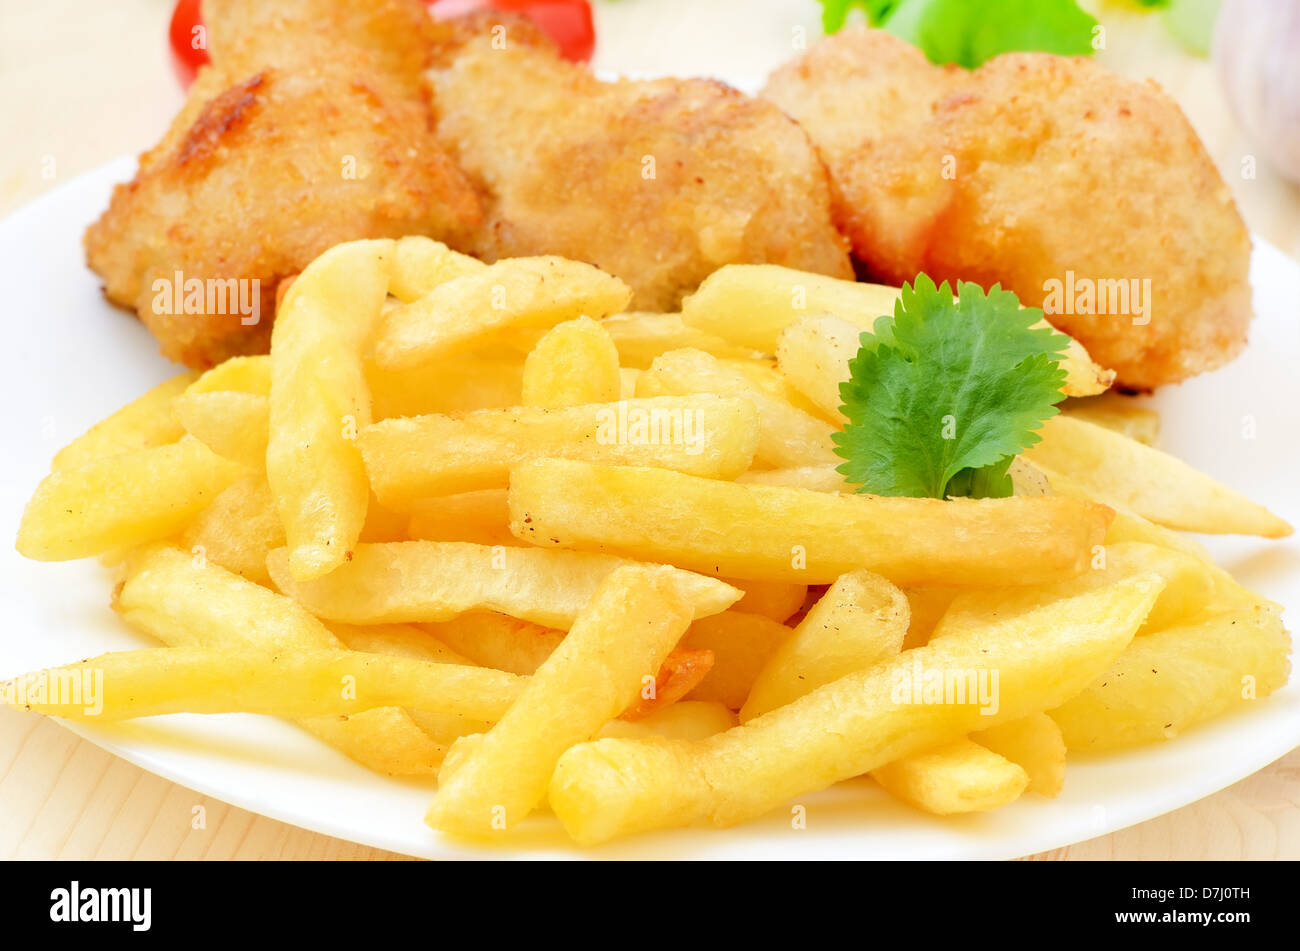 French fries with fried chicken on a white plate - Stock Image